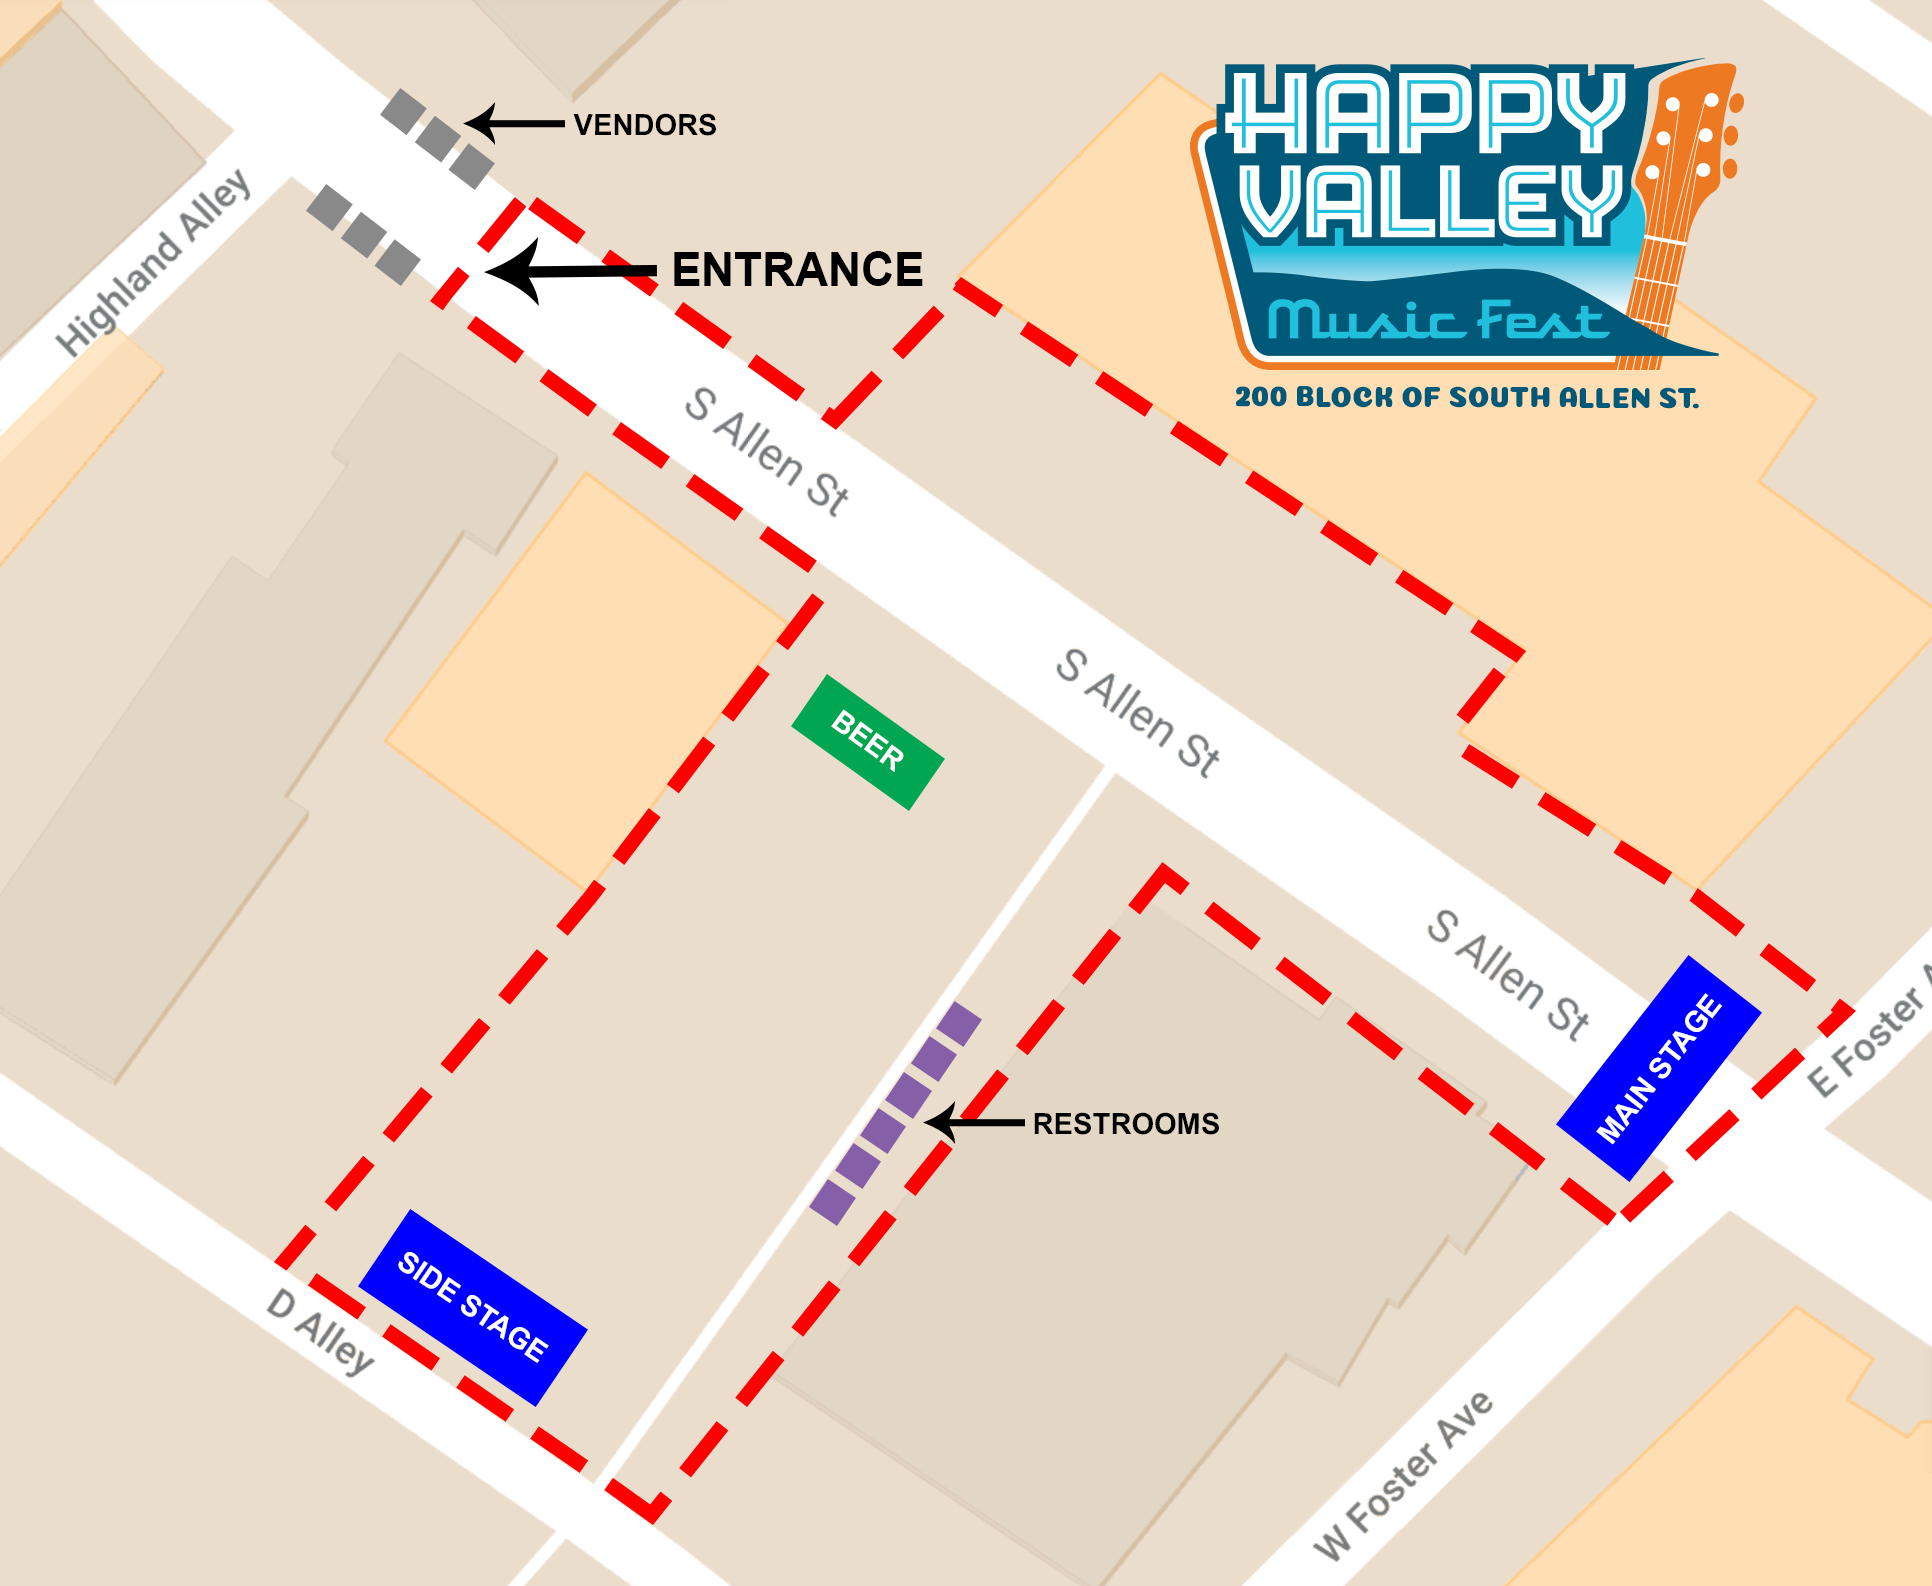 Festival Map - Happy Valley Music Fest on